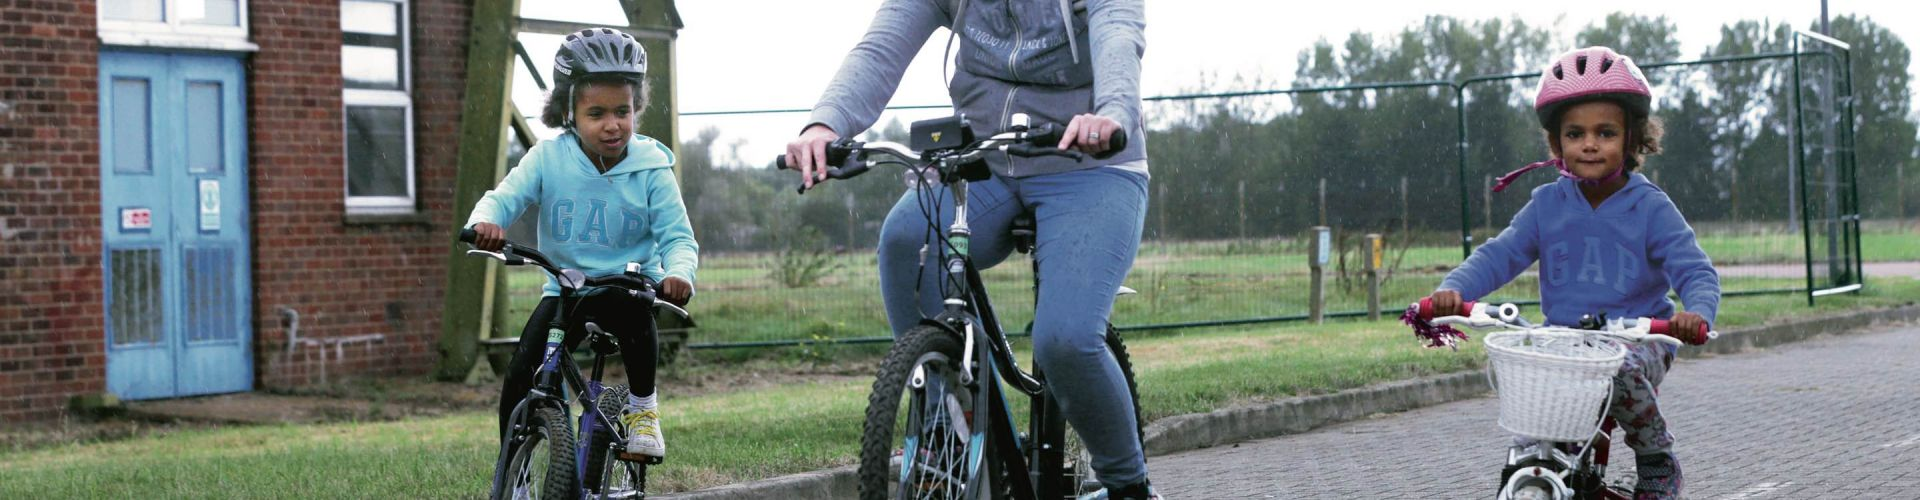 Case study Sustainability - Transport - Waterbeach Cycle App_Banner.jpg